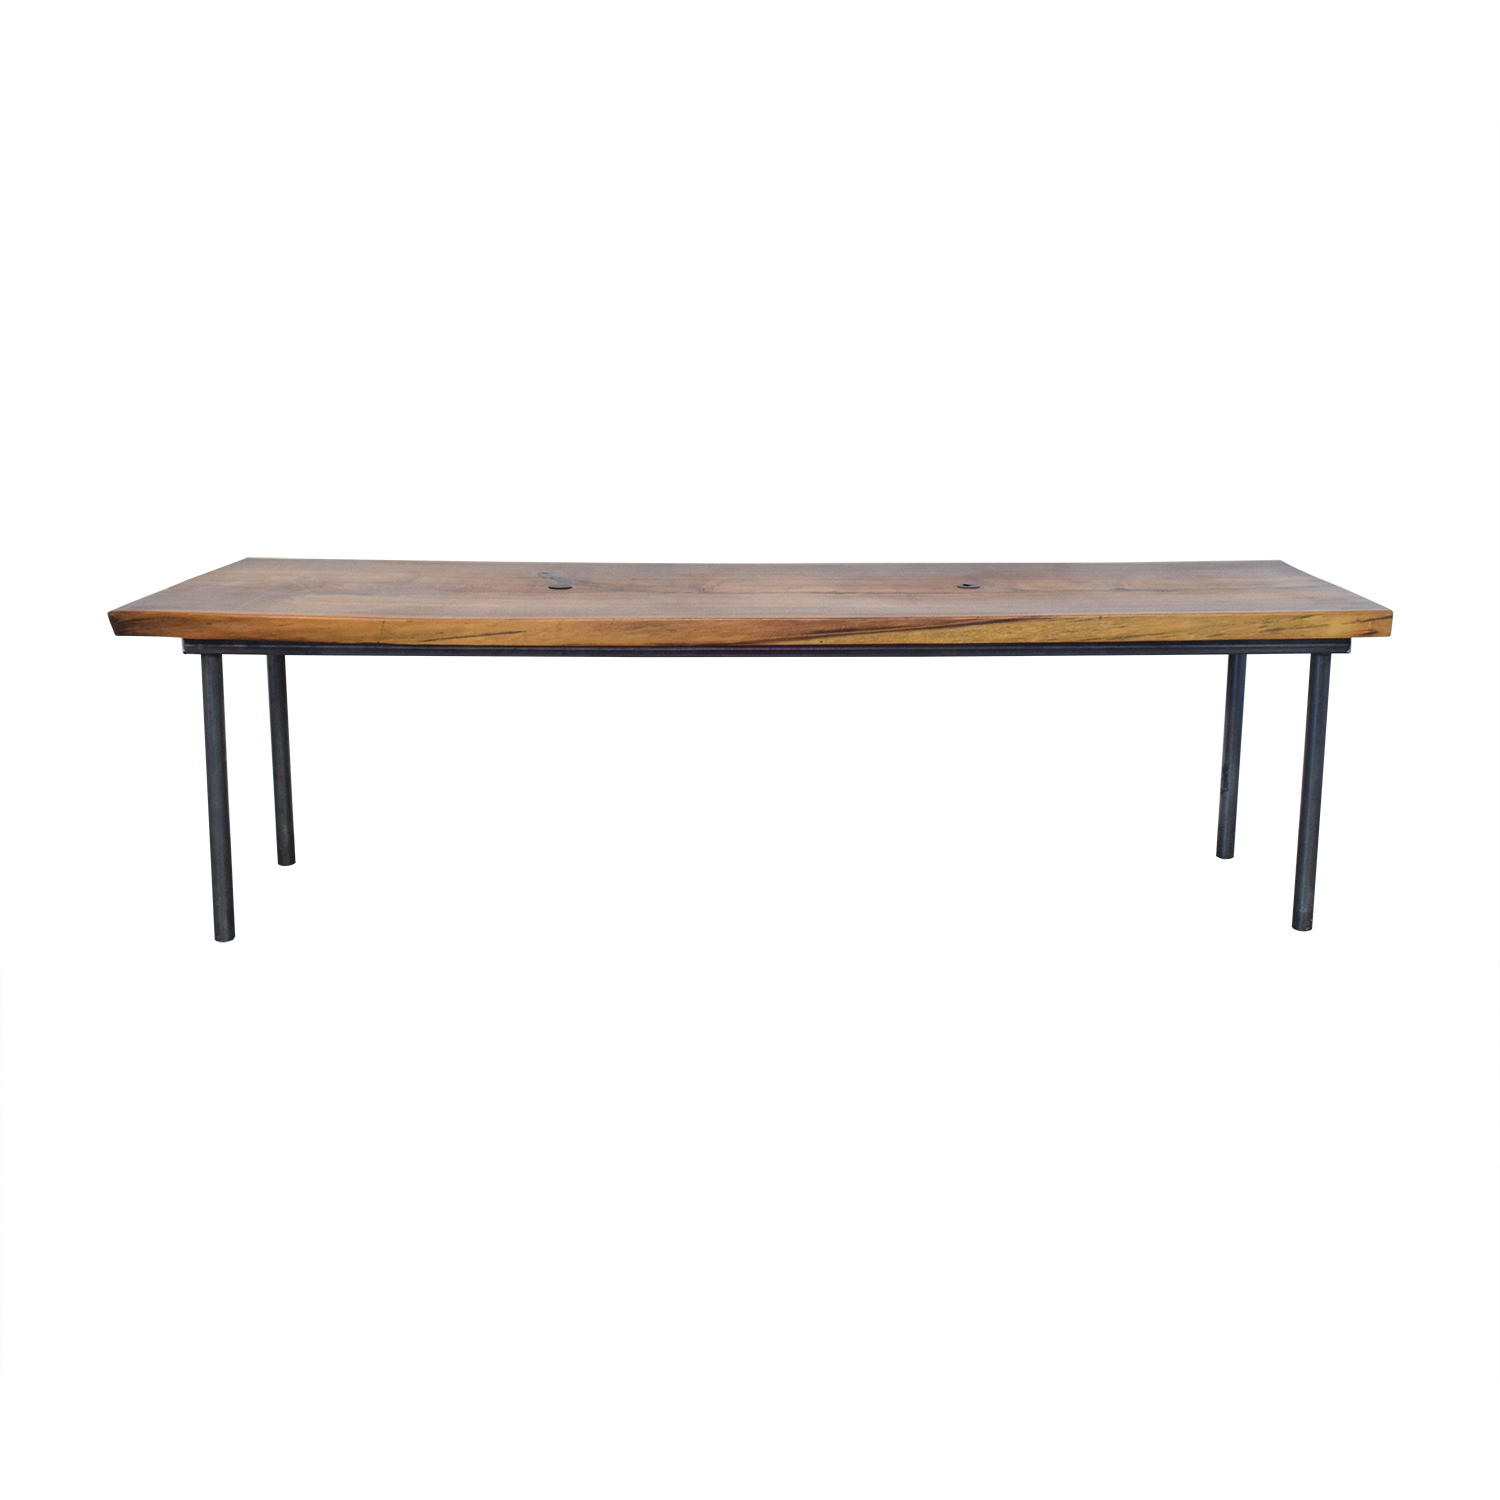 Montana Woods Wooden Coworking Desk or Conference Table coupon